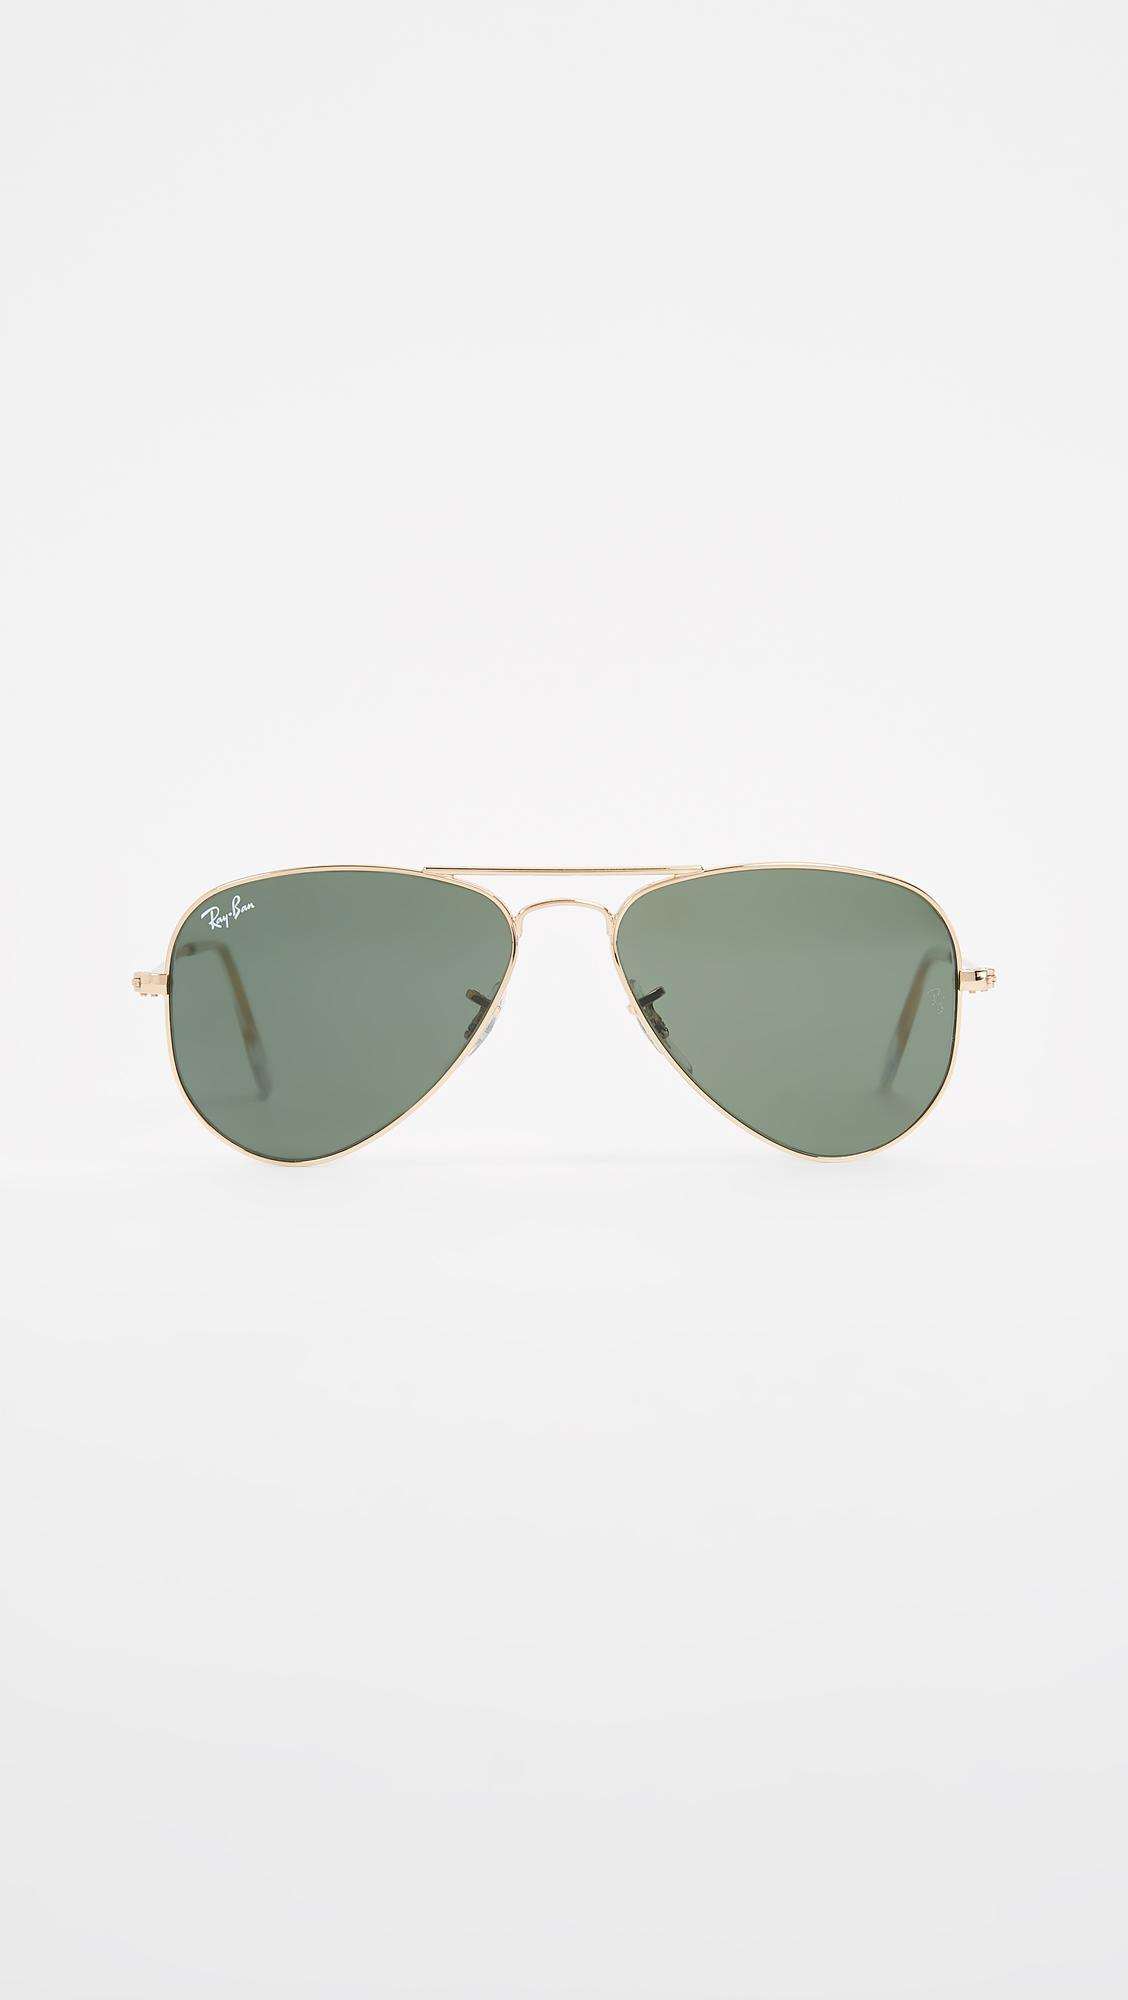 b86866bcb14 Ray-Ban Rb3044 Classic Aviator Sunglasses in Green - Lyst